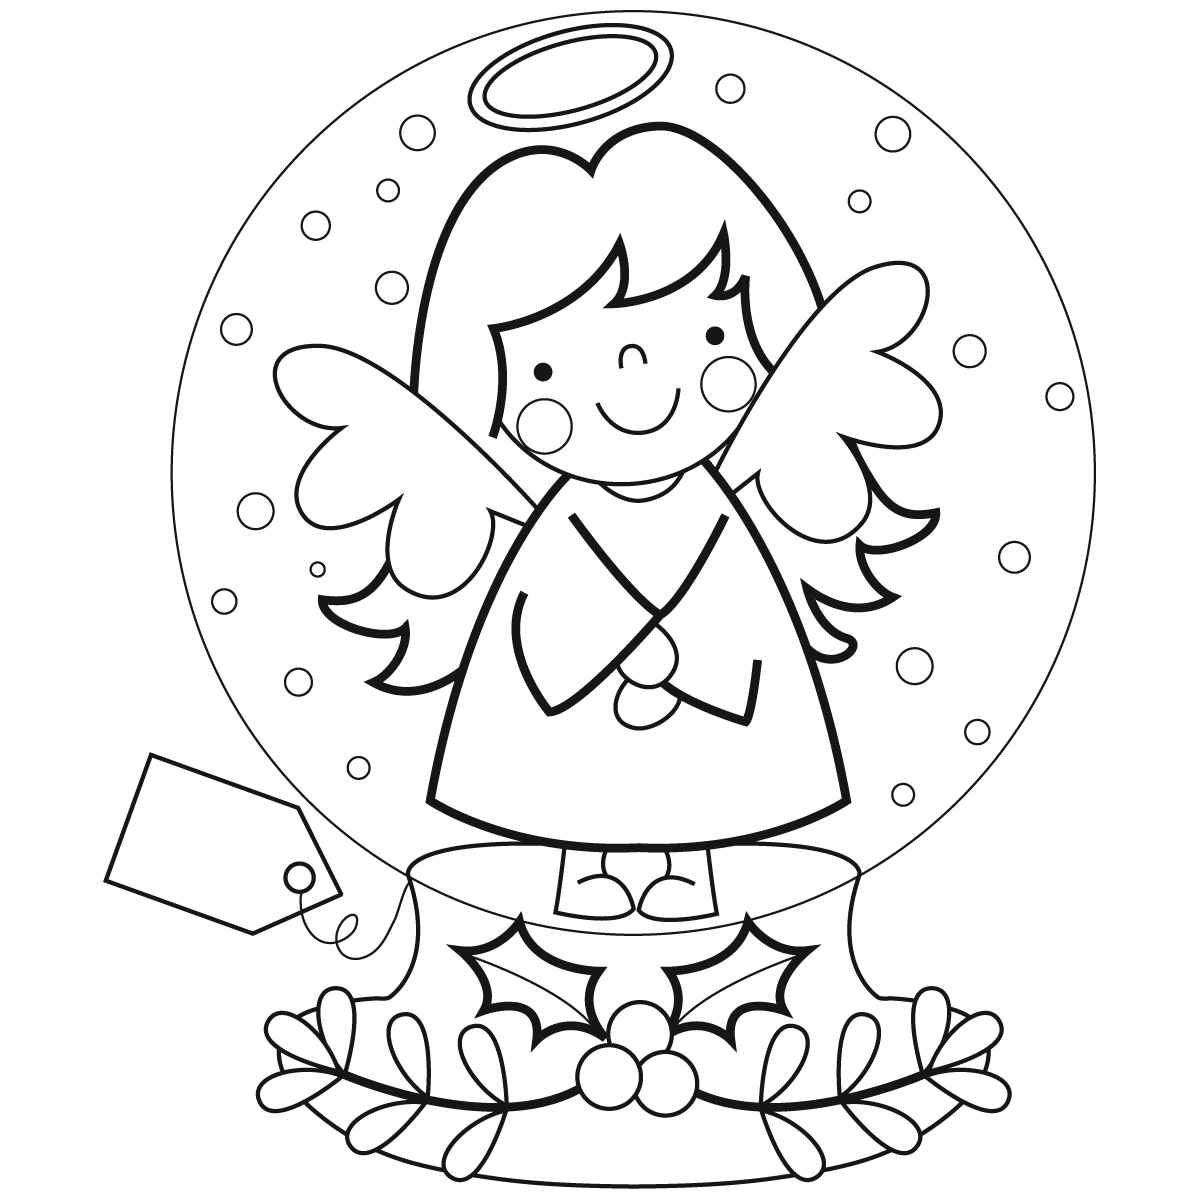 christmas snow globes coloring pages | Marisa Straccia: Snow Globe designs